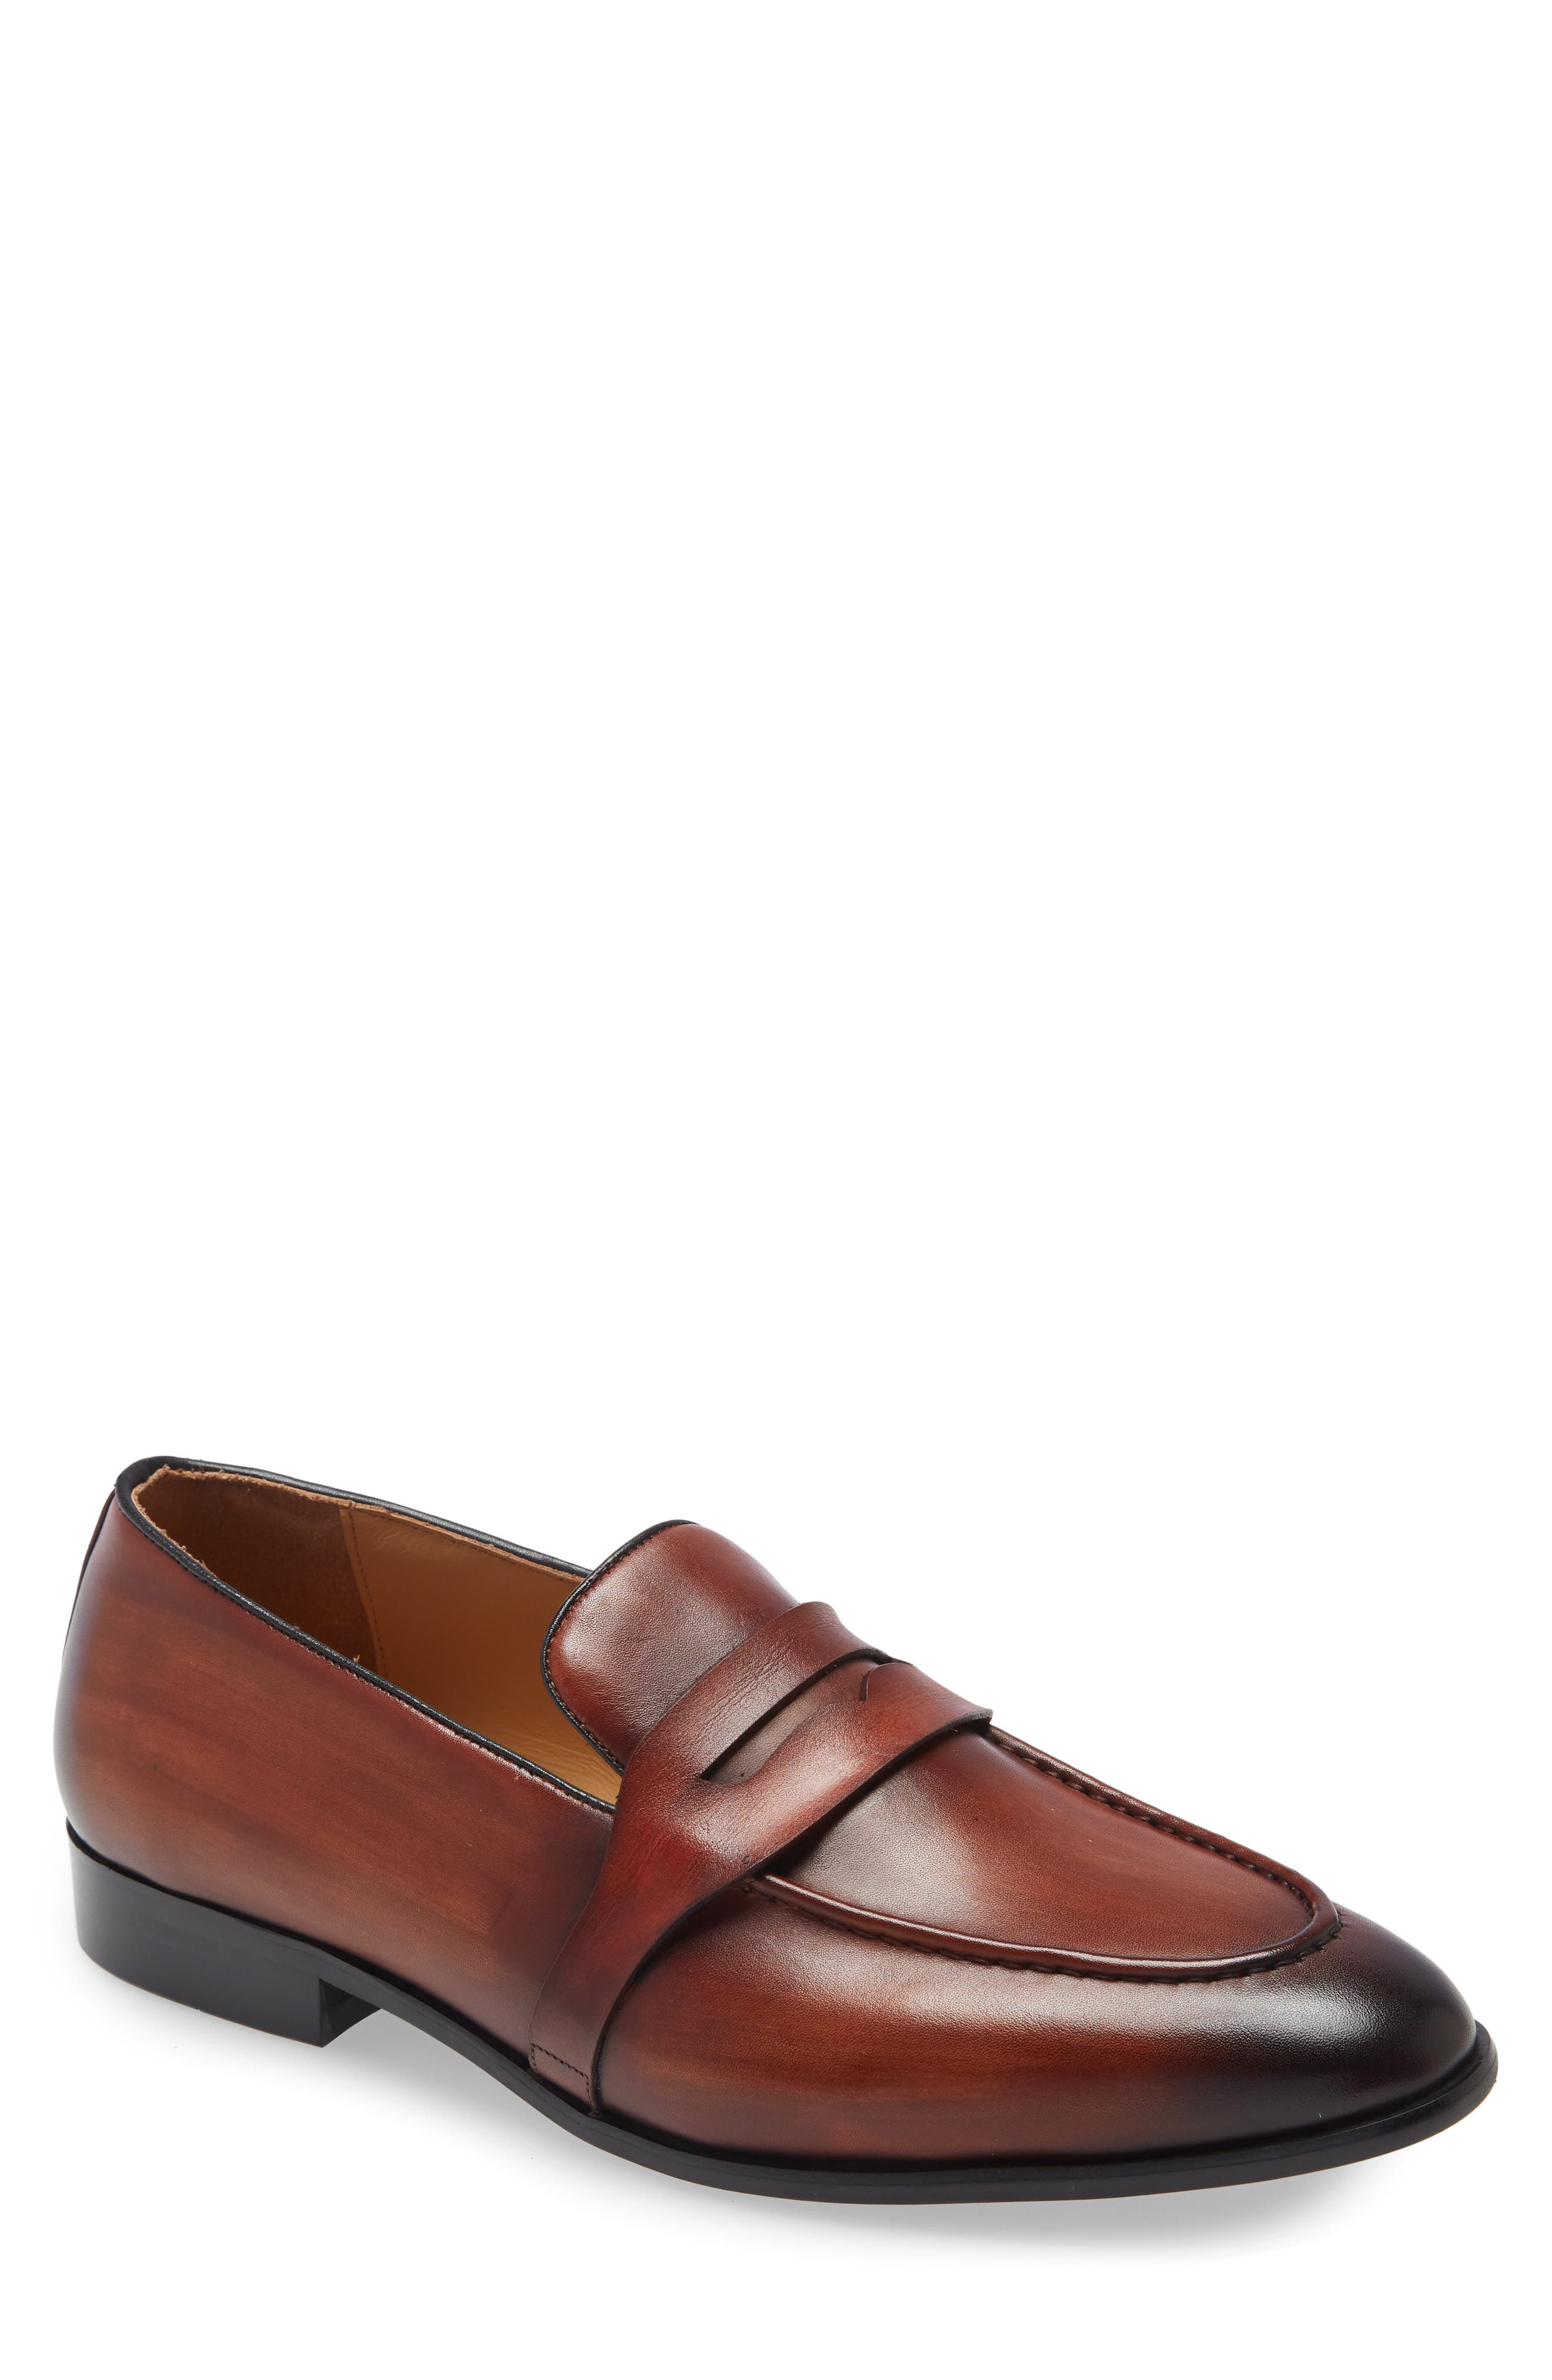 Serenity Penny Loafer